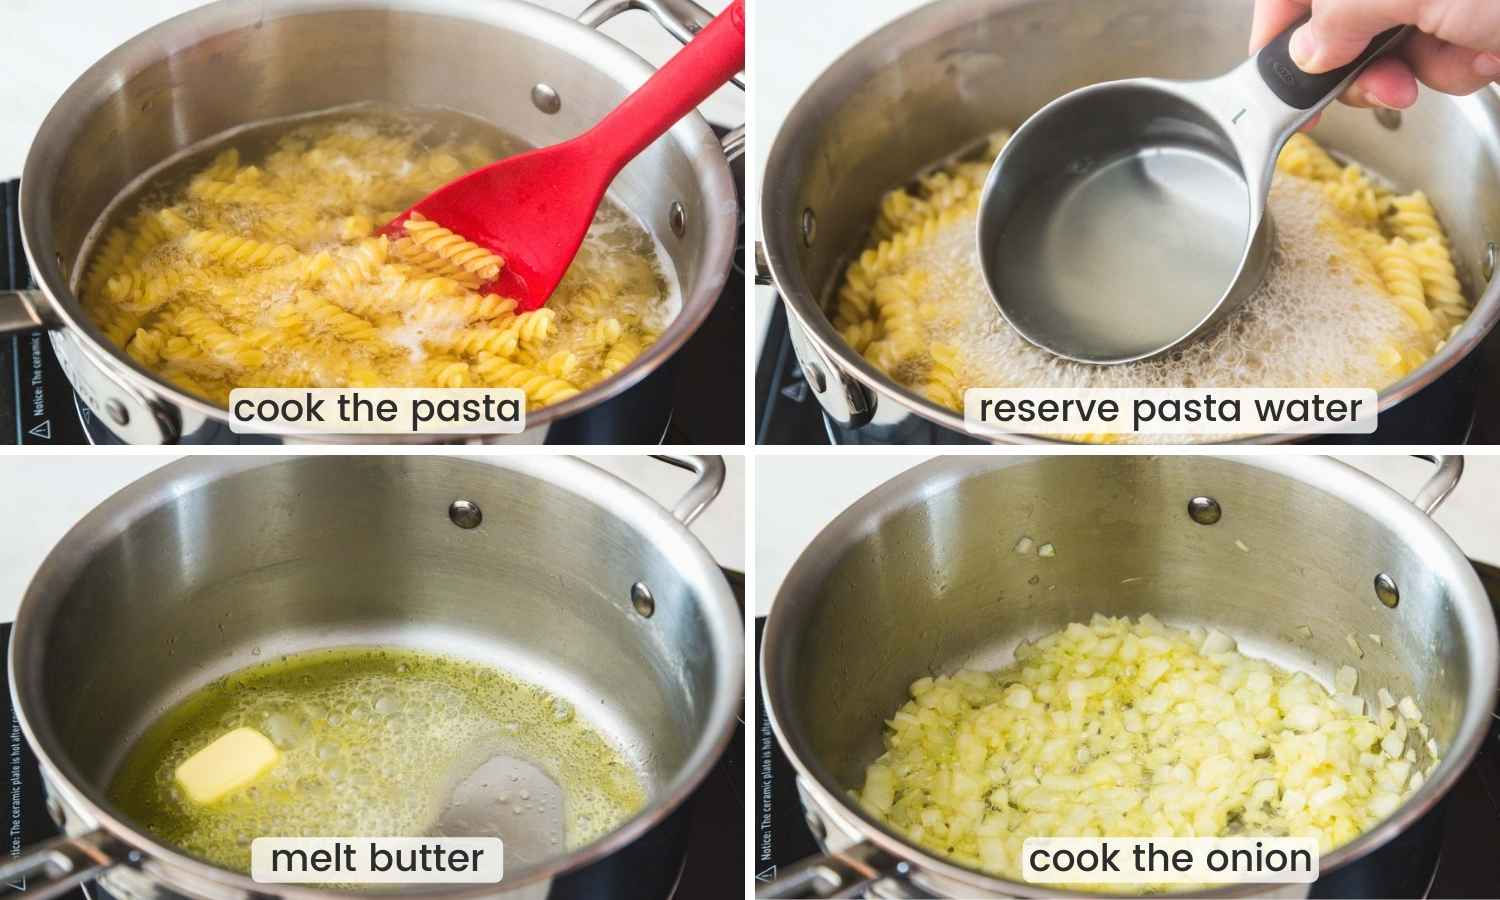 How to cook pasta for pasta with peas dish